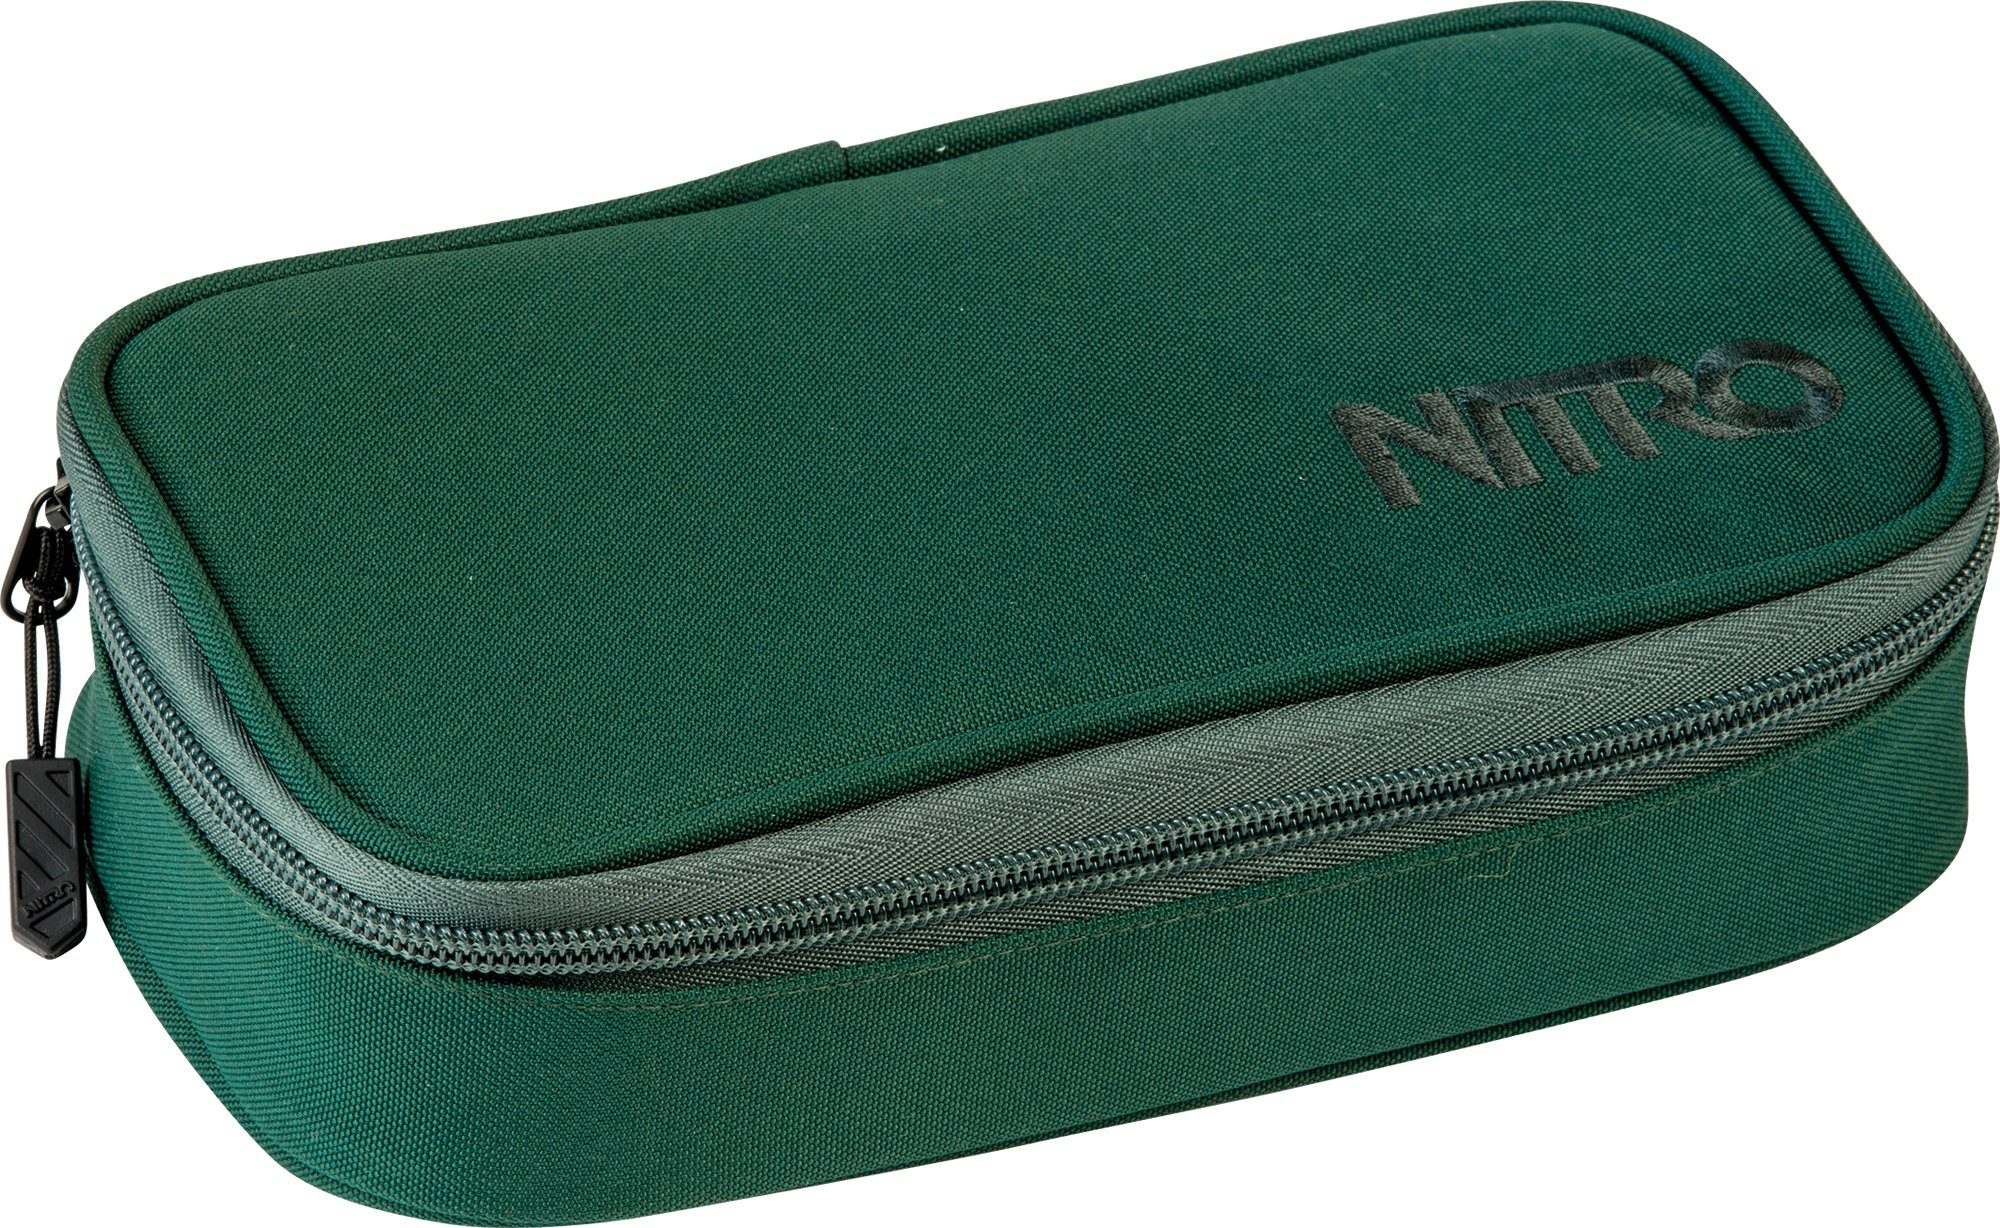 Nitro Federmäppchen, »Pencil Case XL Ponderosa«